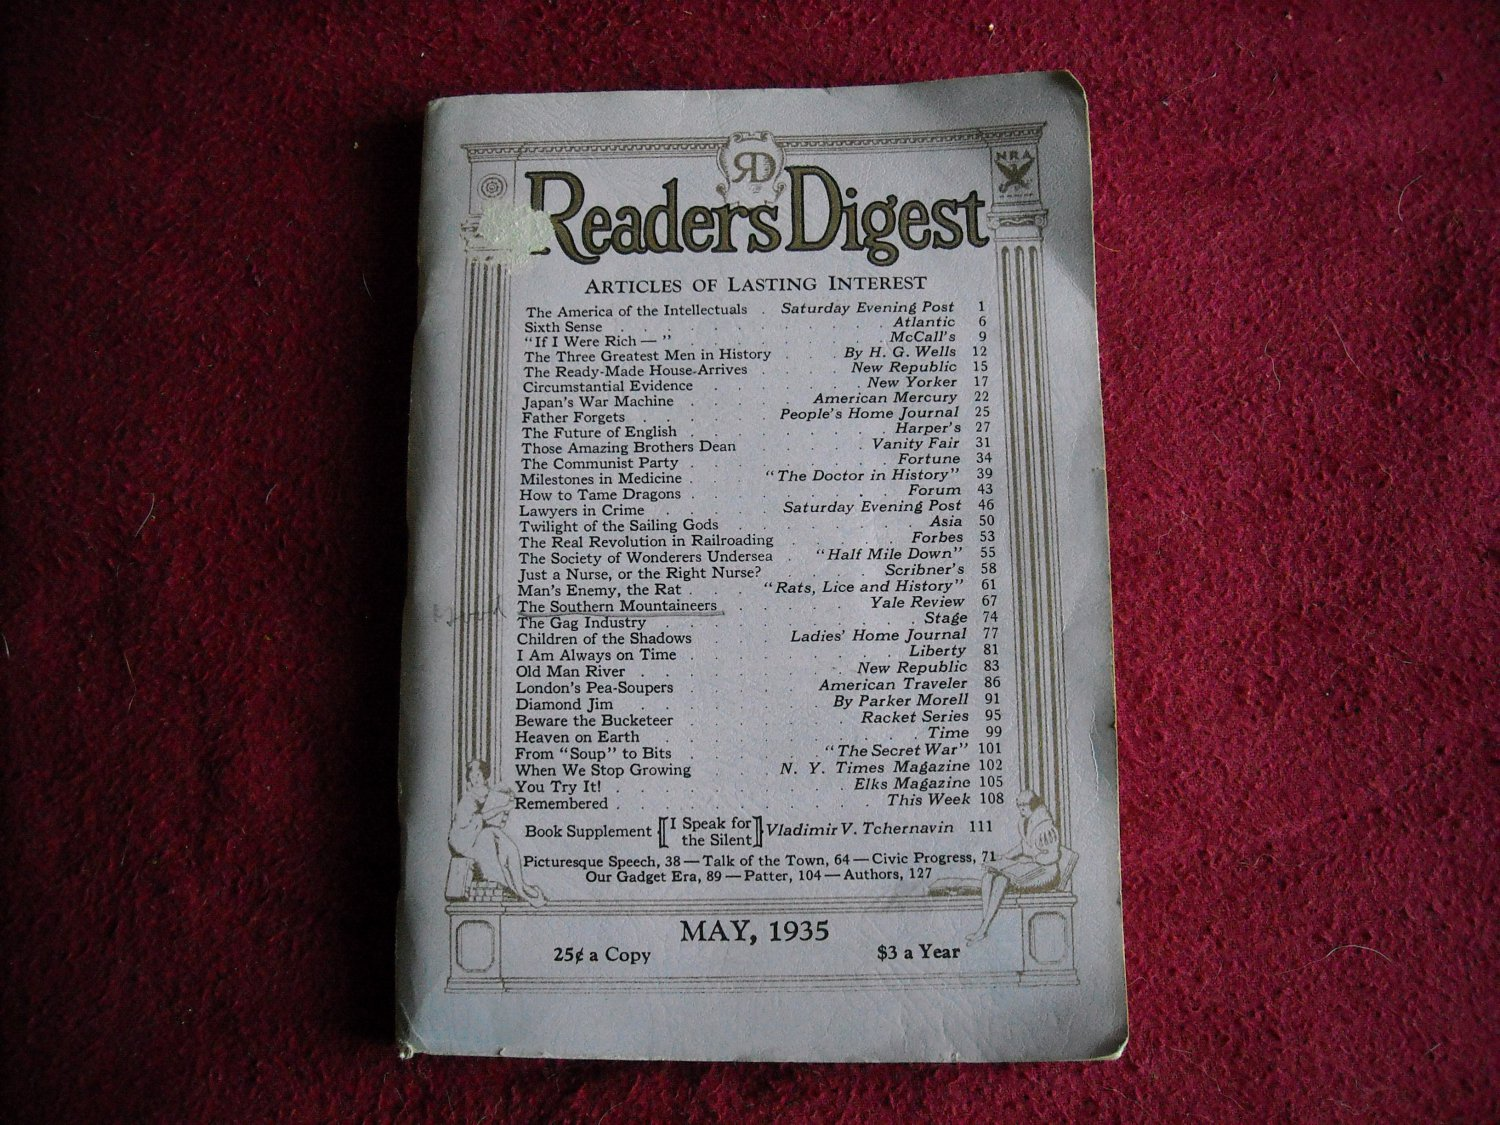 Reader's Digest Magazine May 1935 Vol 26 No 159 (G2